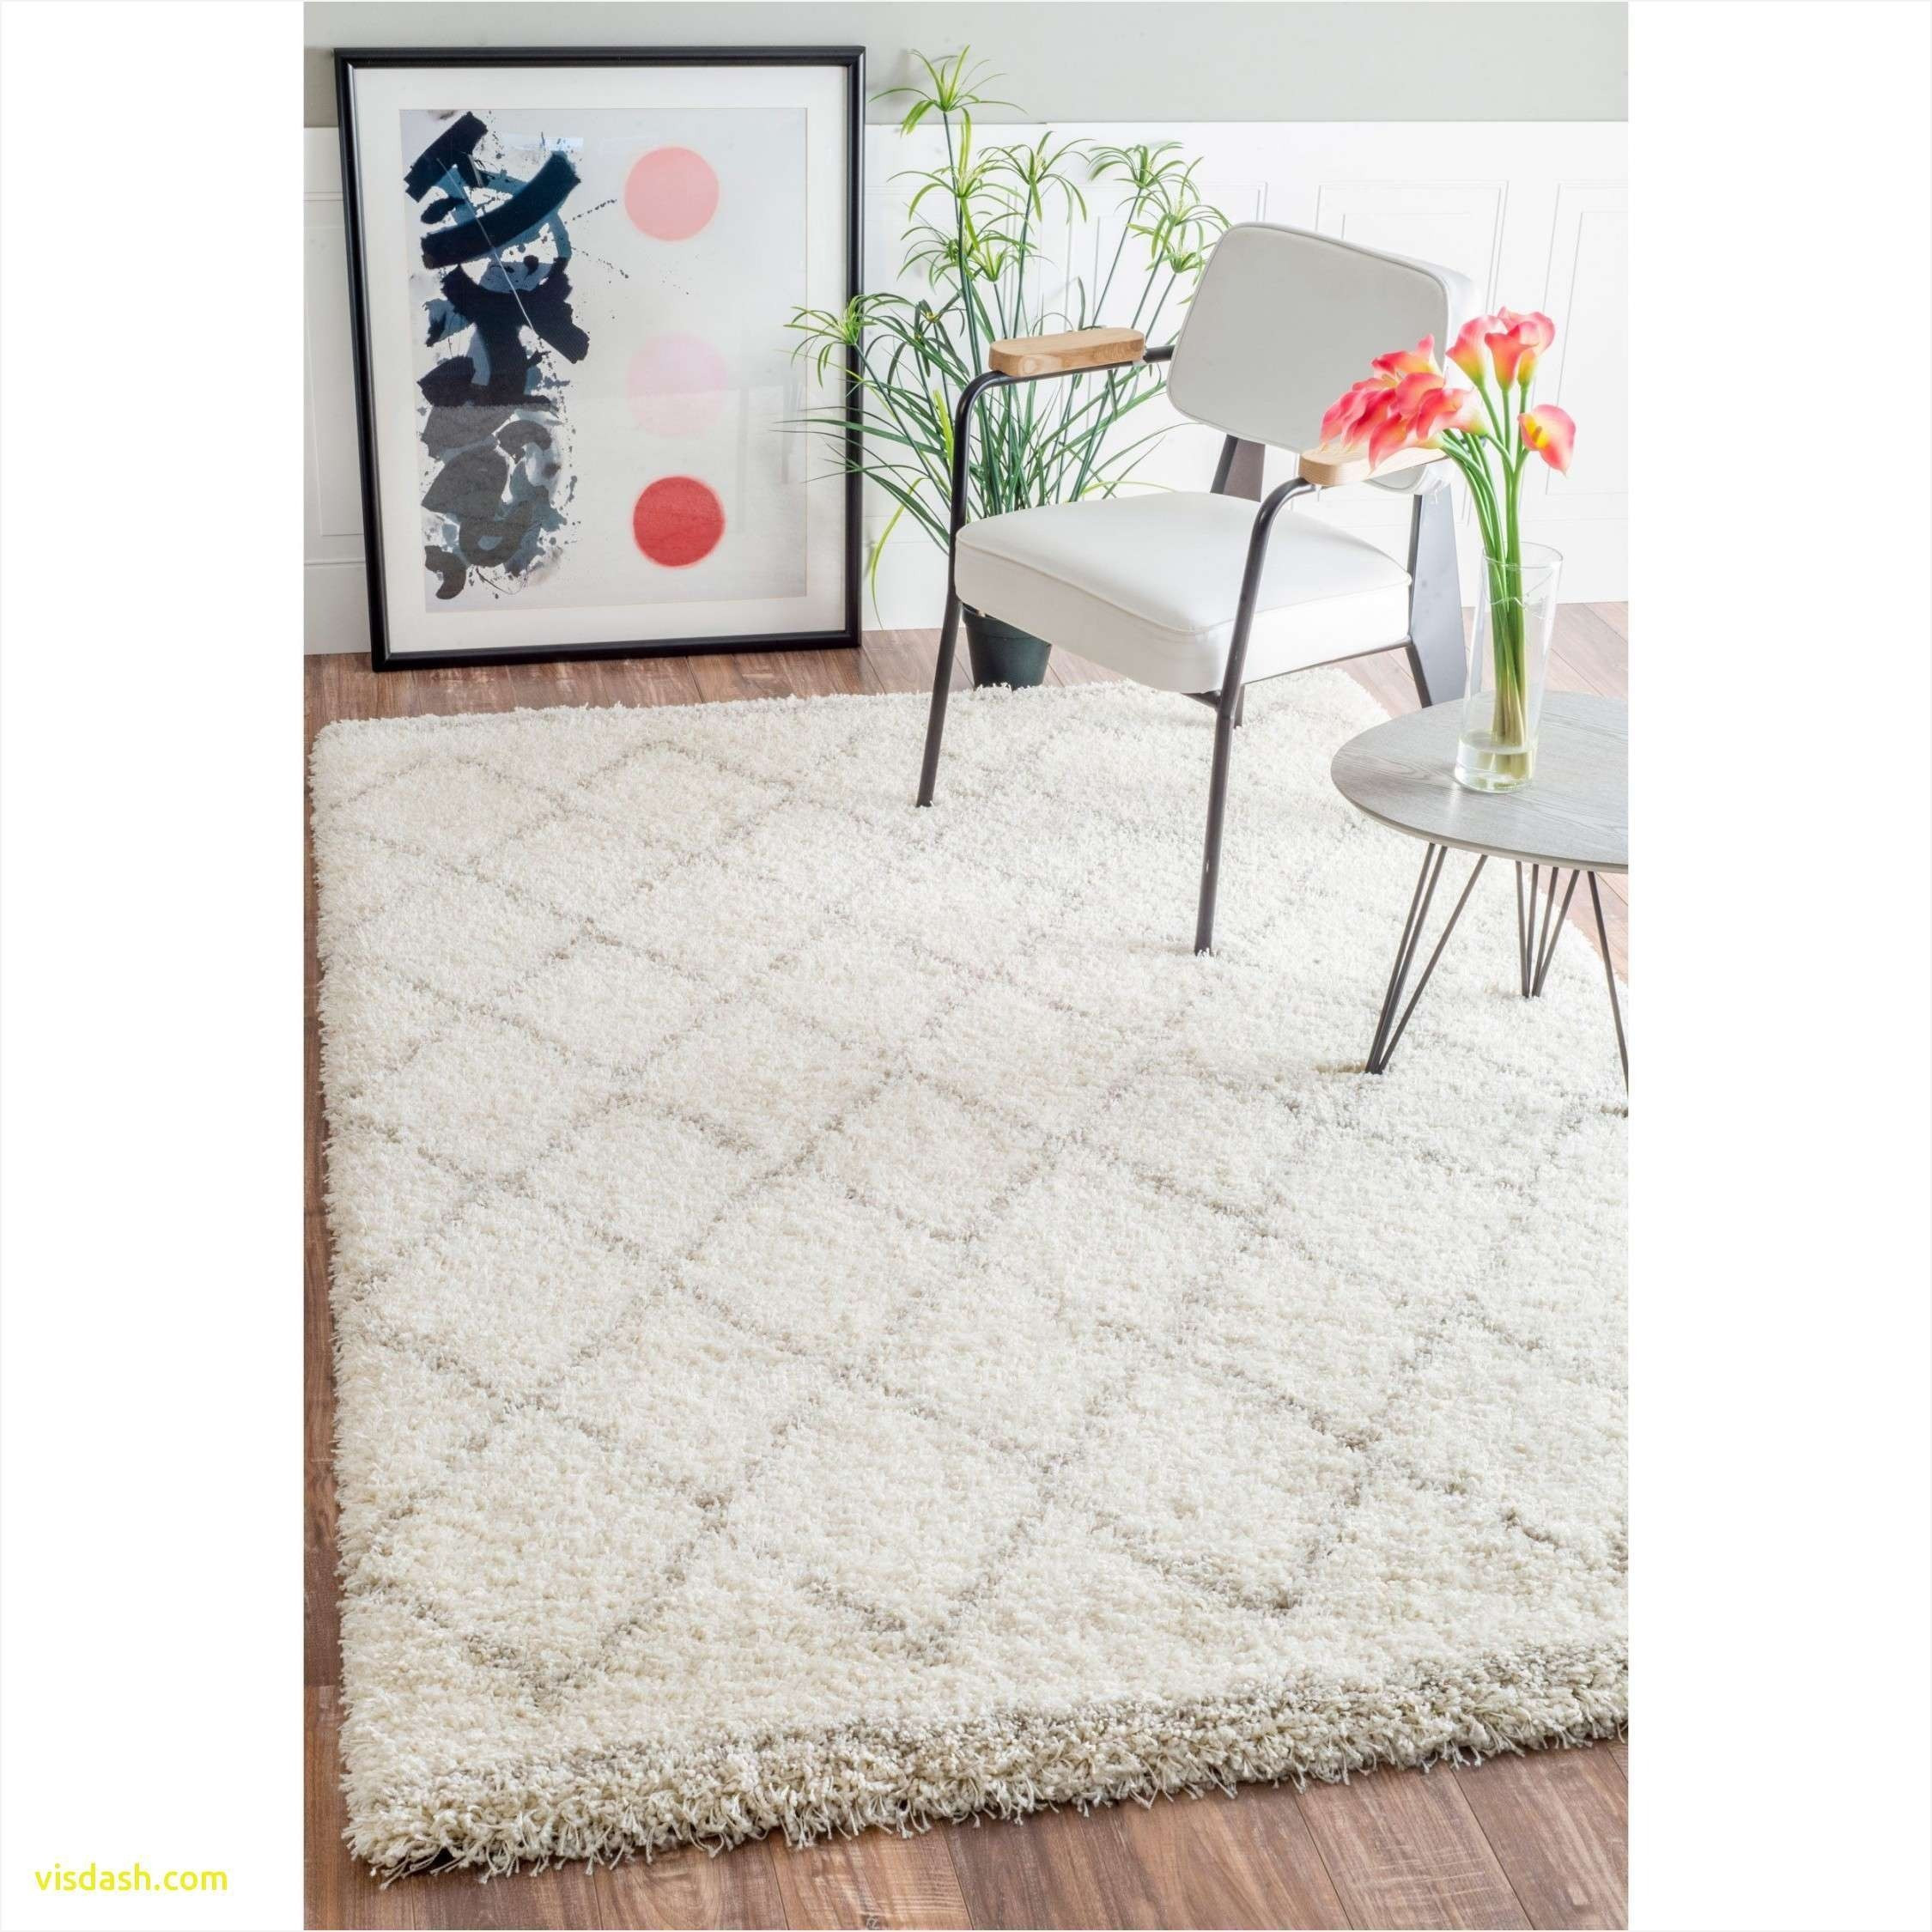 high quality hardwood flooring of carpet for kids fresh high pile carpet luxury shagpile rug area rugs with regard to carpet for kids new rug unique children s bedroom area rugs elegant trellis rug 0d of